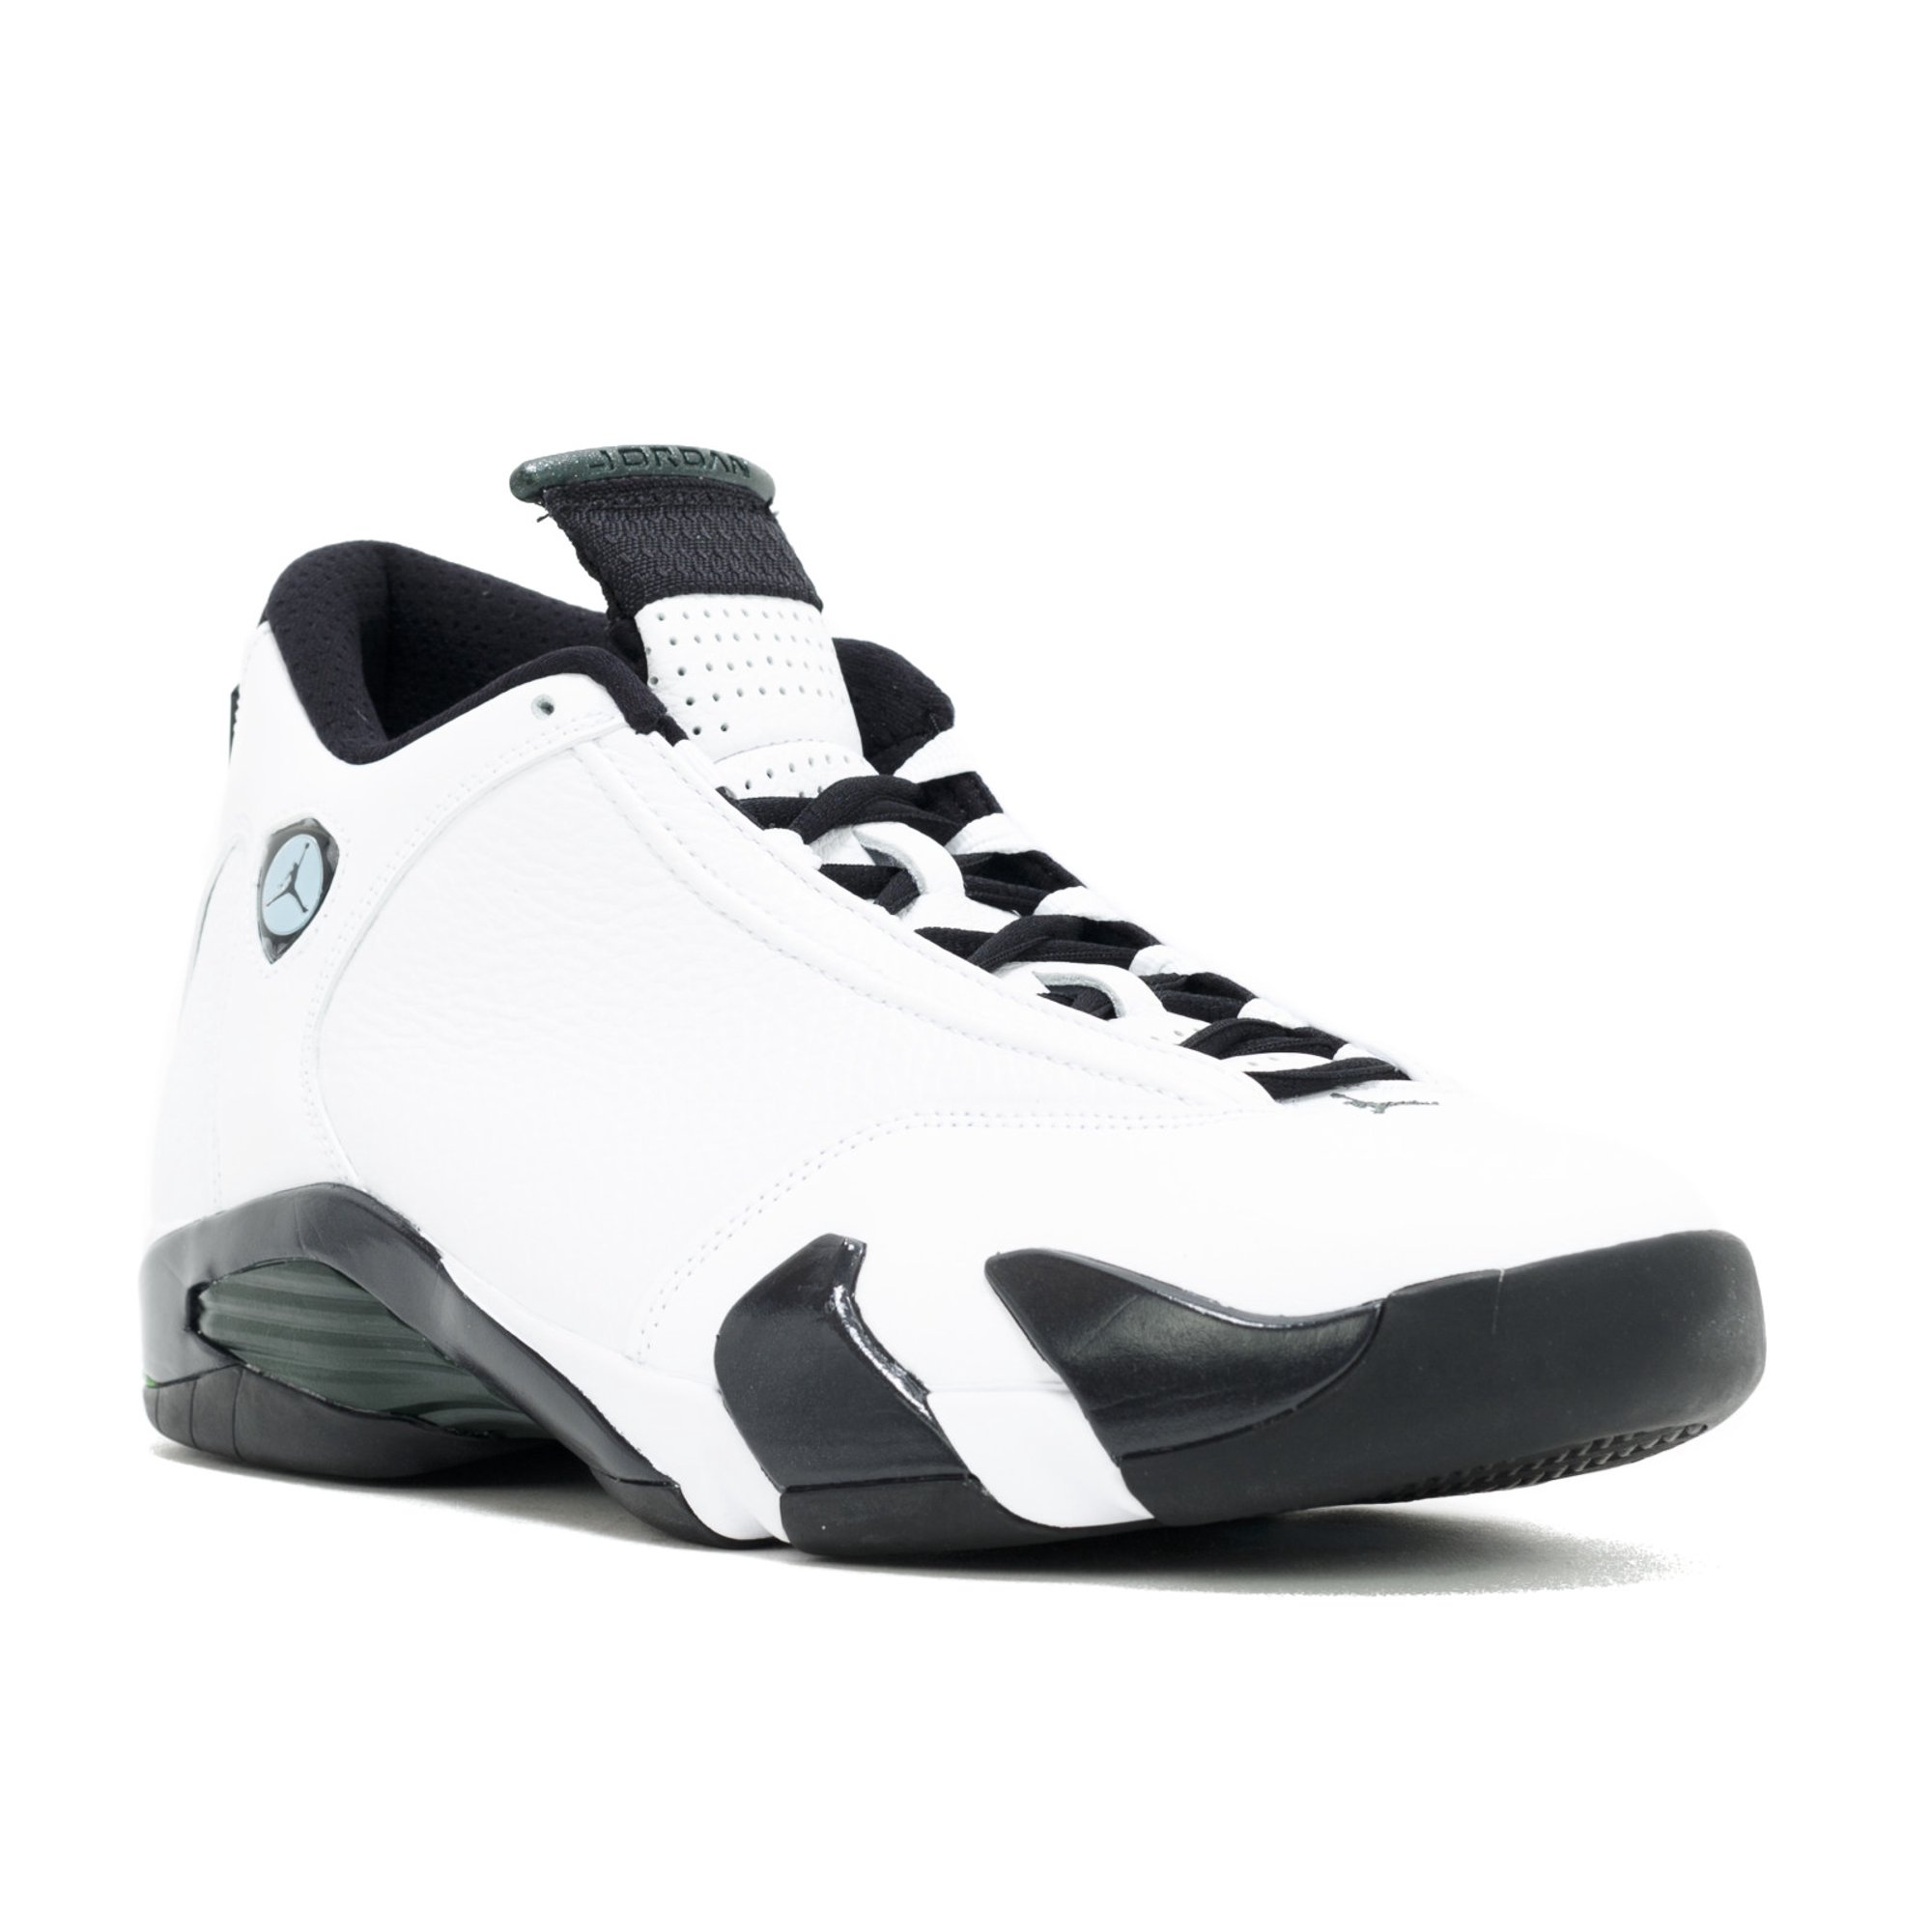 e425fd3c1170 Air Jordan - Men - Air Jordan 14 Retro - 487471-106 - Size 11 ...